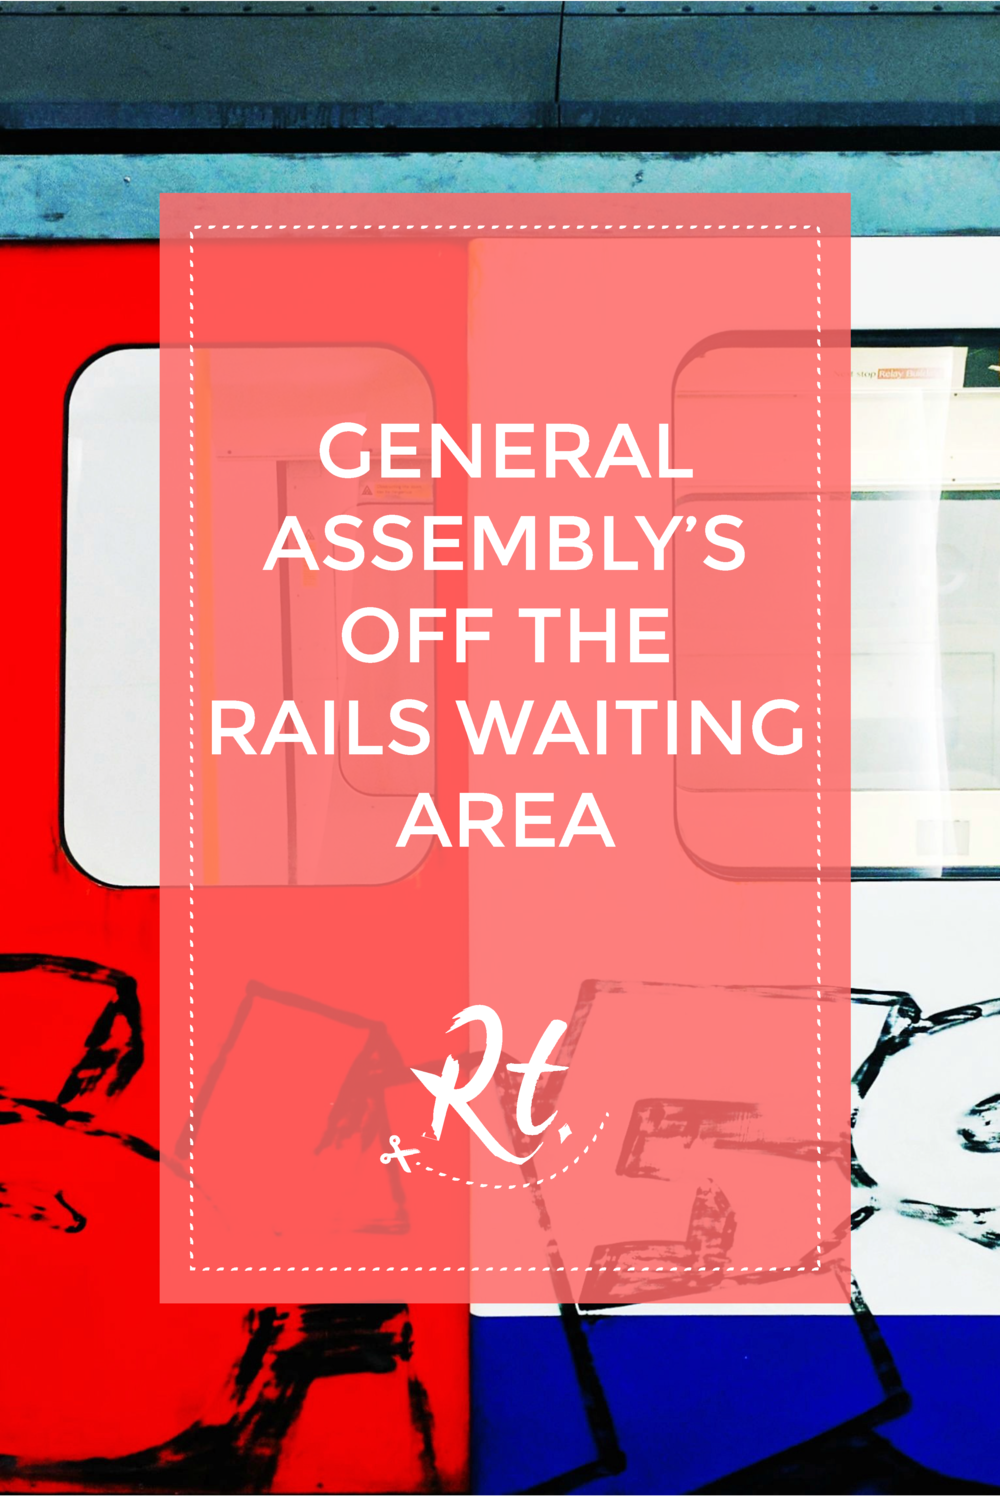 General Assembly's Tube Car Waiting Area